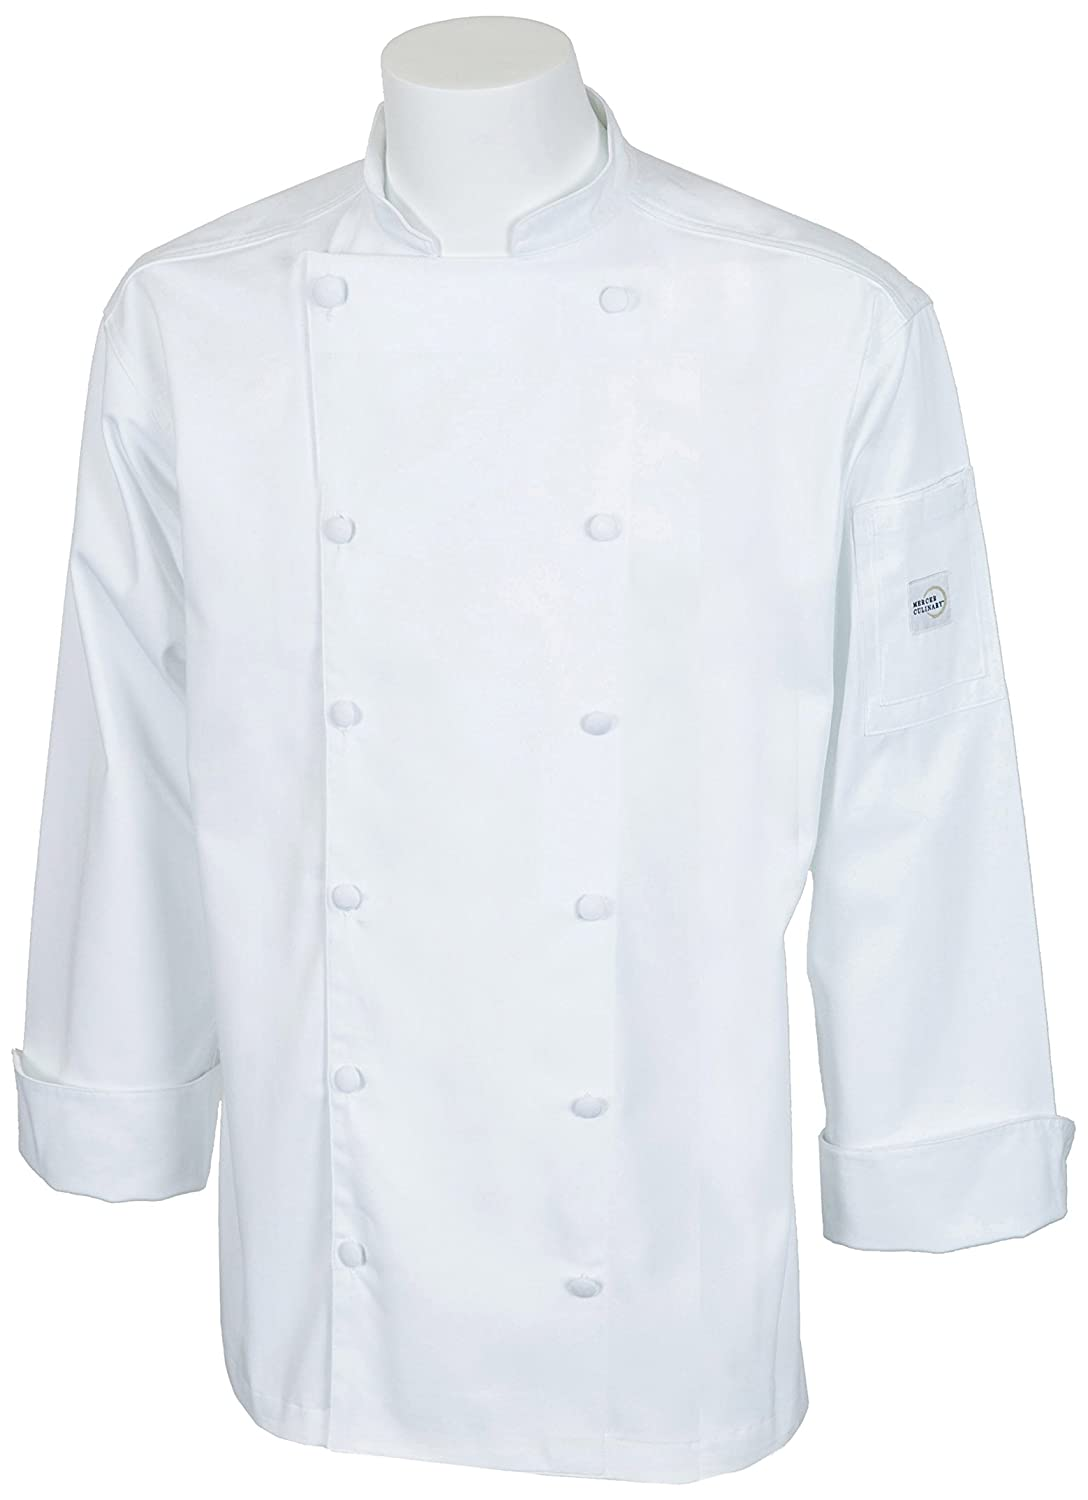 Mercer Culinary M62030WH3X Renaissance Men's Traditional Neck Jacket, 3X-Large, White